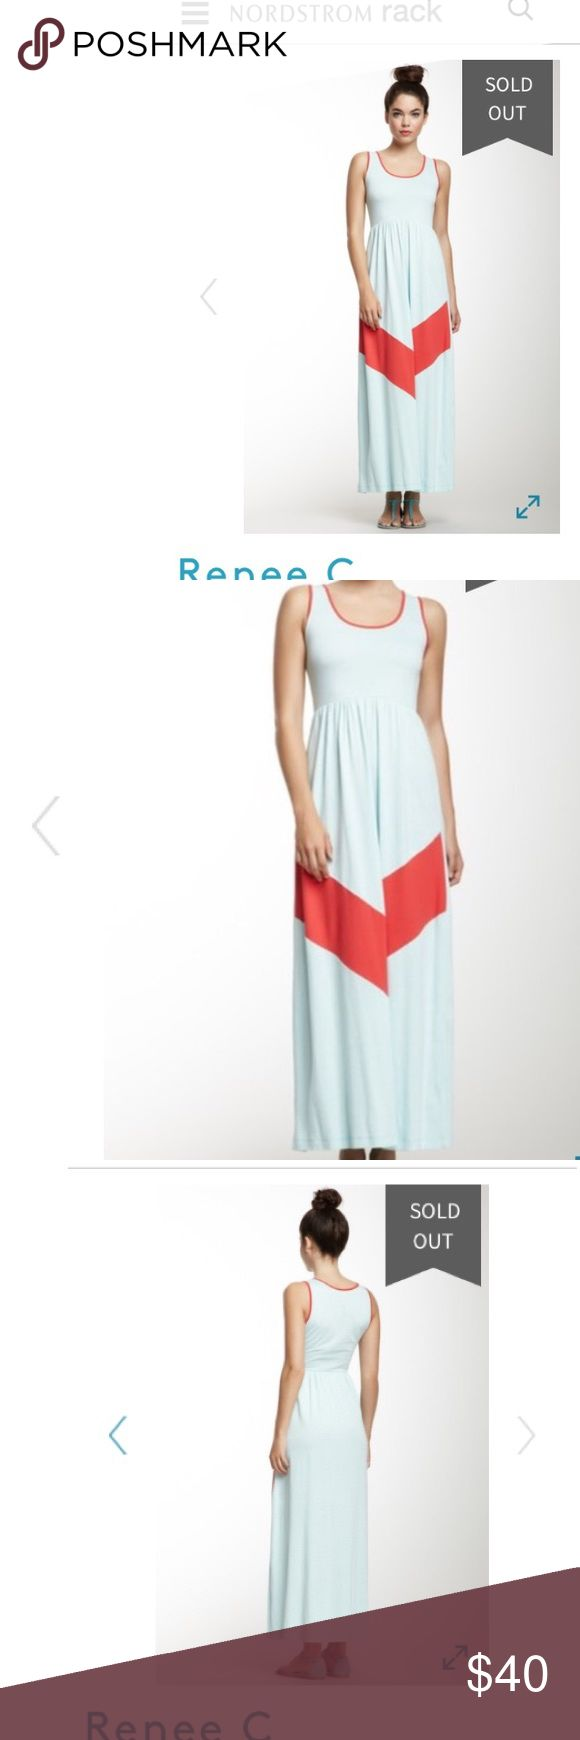 {Reneec}-Nordstrom Rack blue chevron maxi dress👗 Darling Summer Blue maxi dress from Nordstrom rack. Sold out everywhere! Stock pictures don't show the correct blue, so make sure you see all the pictures for best color idea. Size small, worn once for wedding. Smoke/pet free home! Renee C. Dresses Maxi